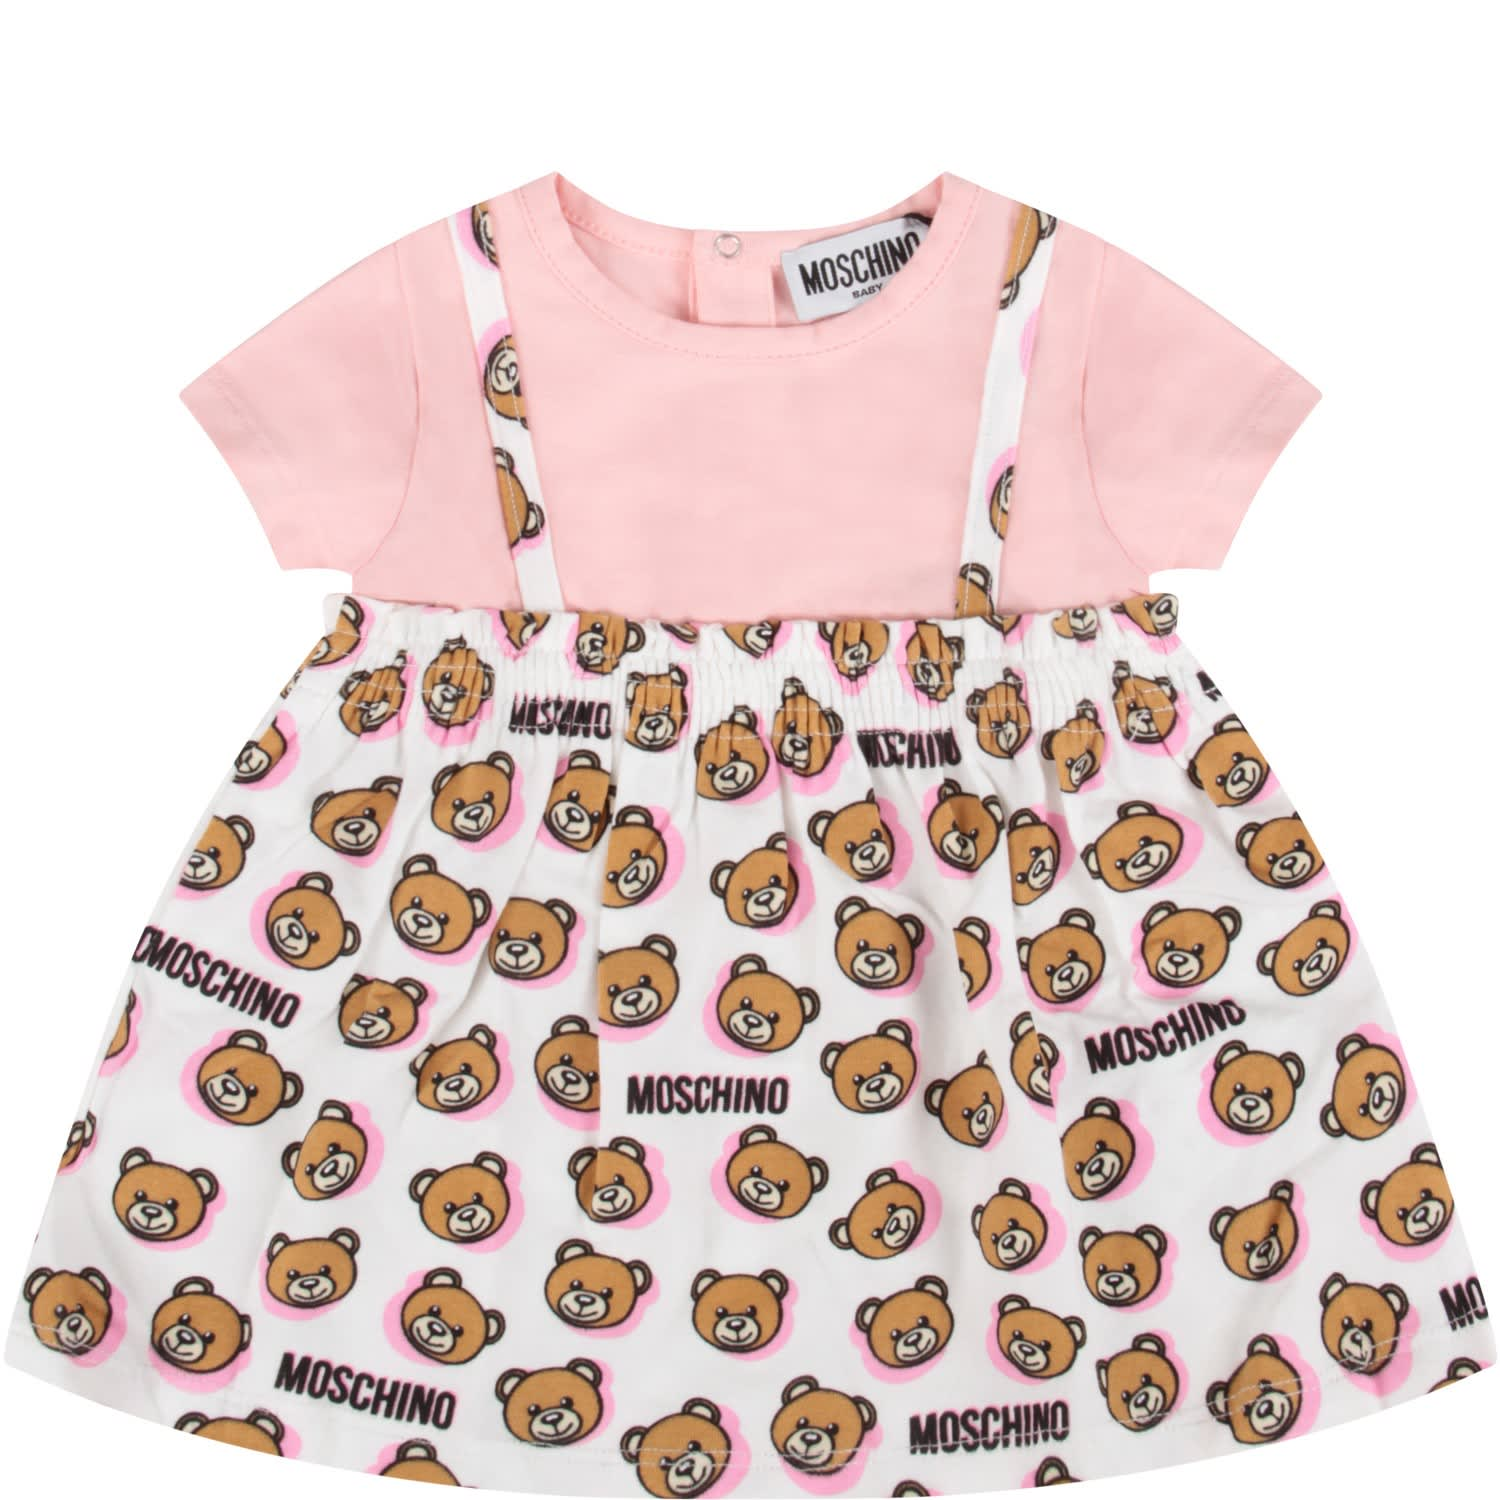 Buy Moschino Pink And White Babygirl Dress With Teddy Bears online, shop Moschino with free shipping